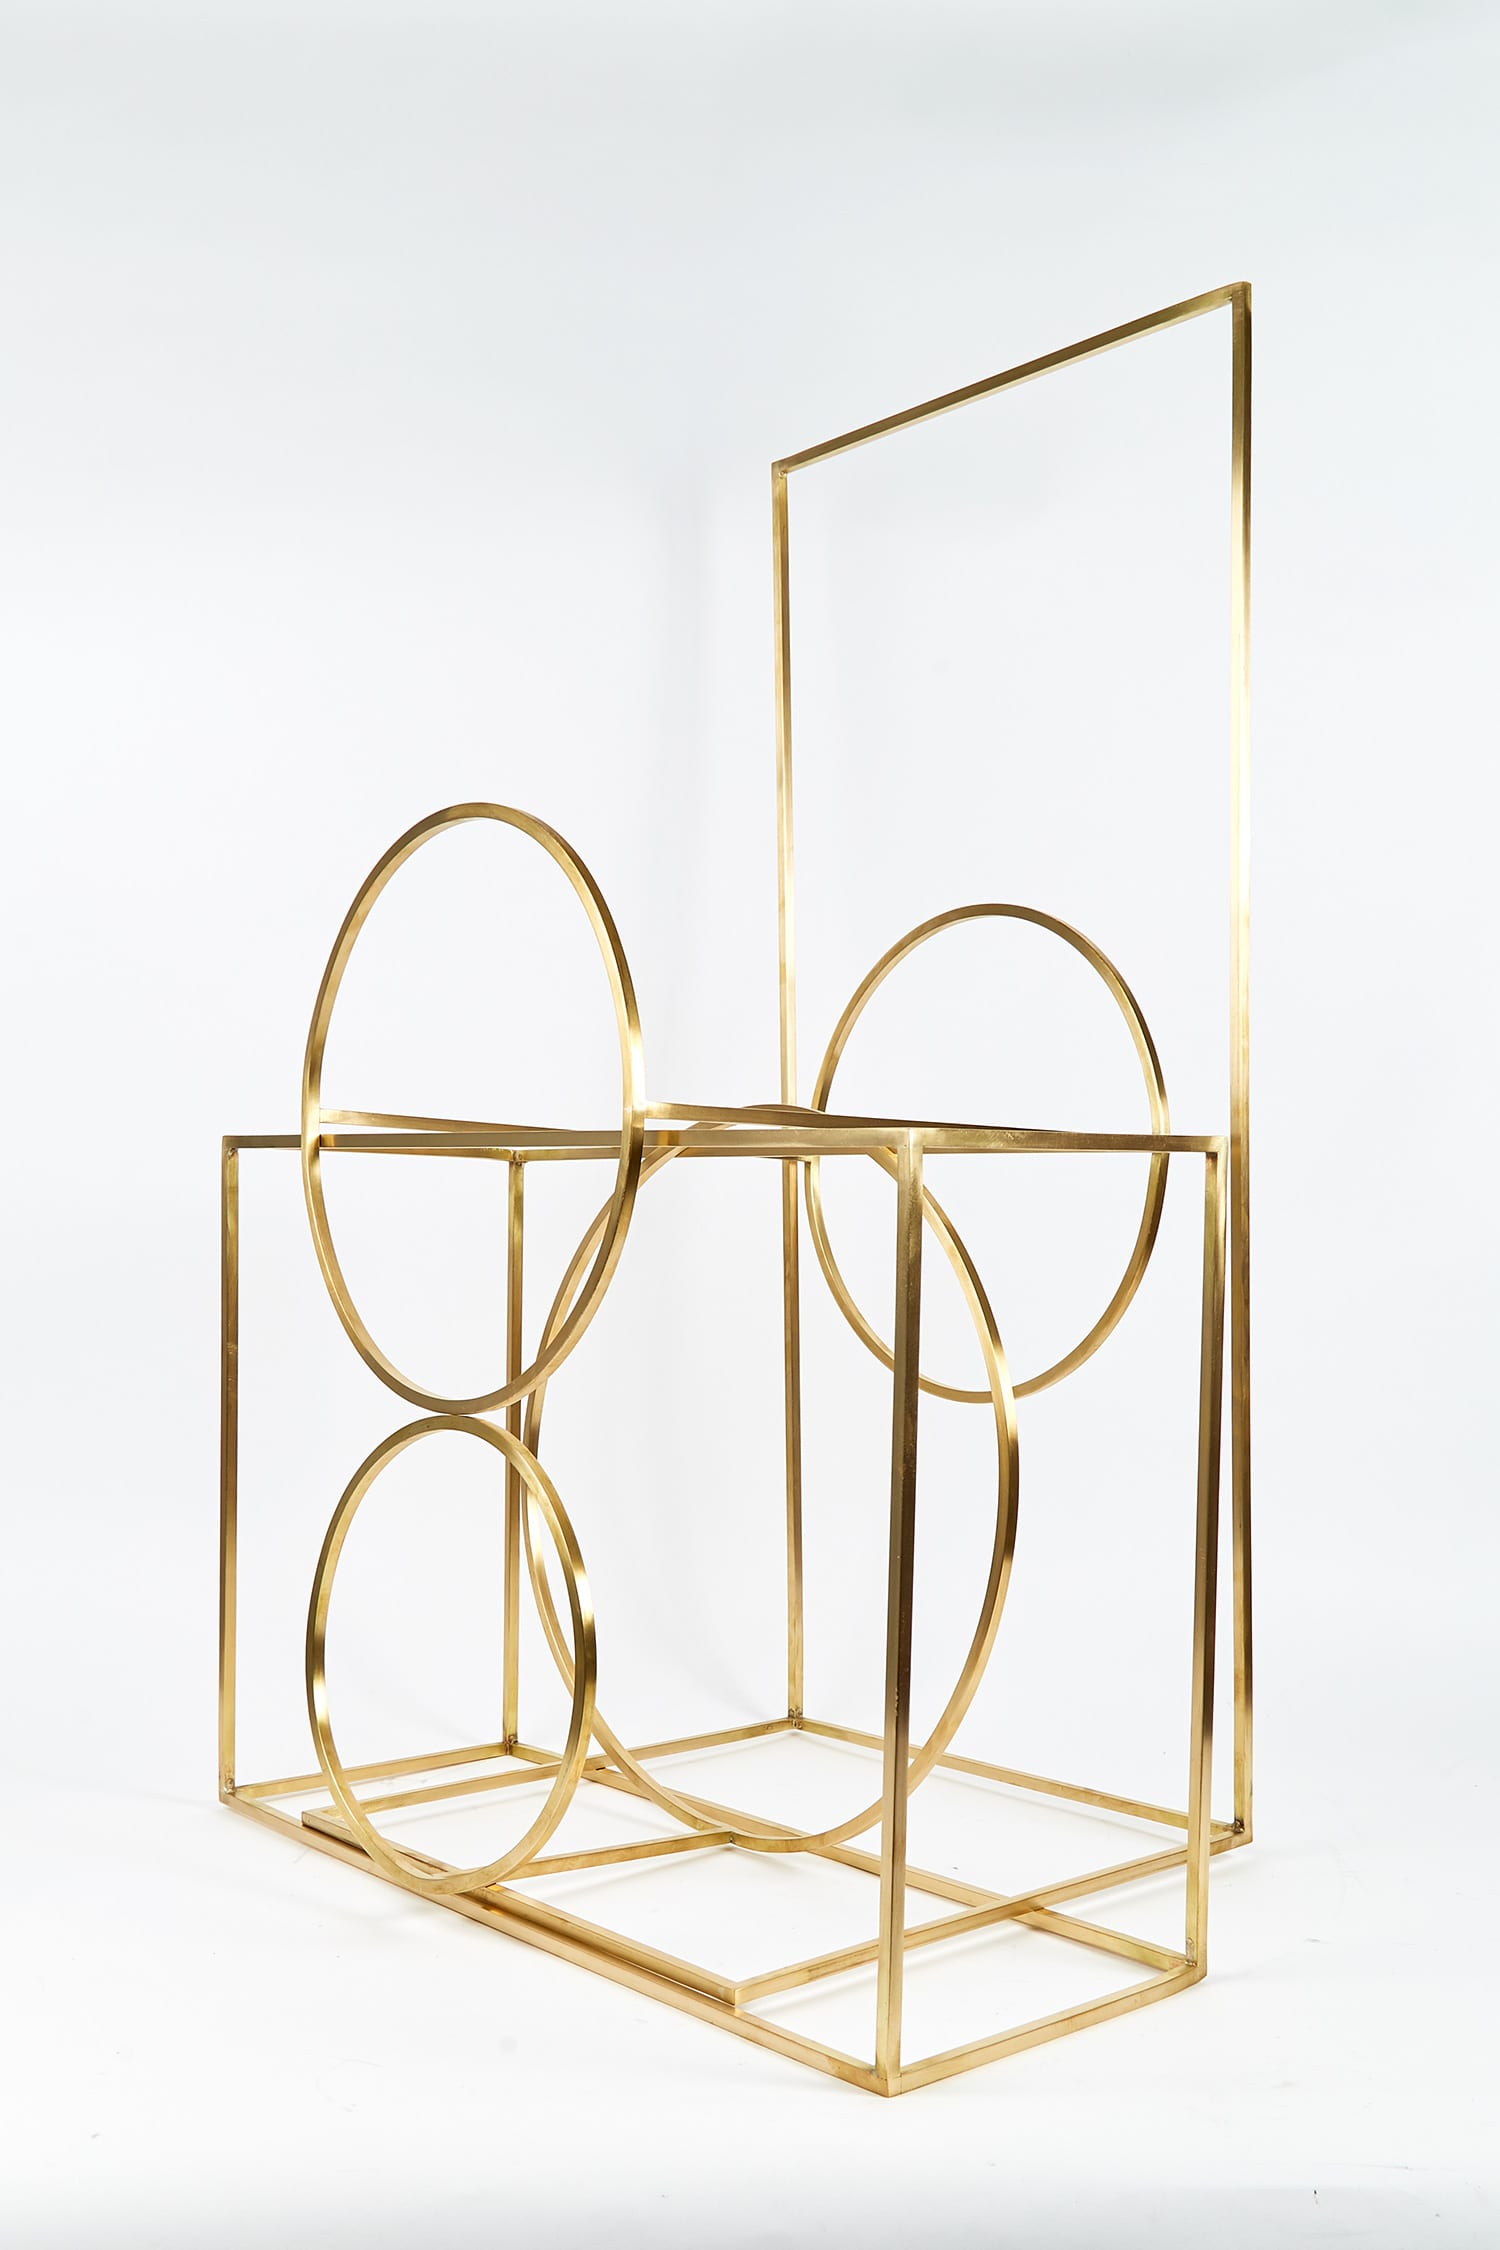 LOCAL DESIGN Sculptures of Infinite Arrangement by Anna Varendorff, Milan Design Week 2018 Preview | Yellowtrace